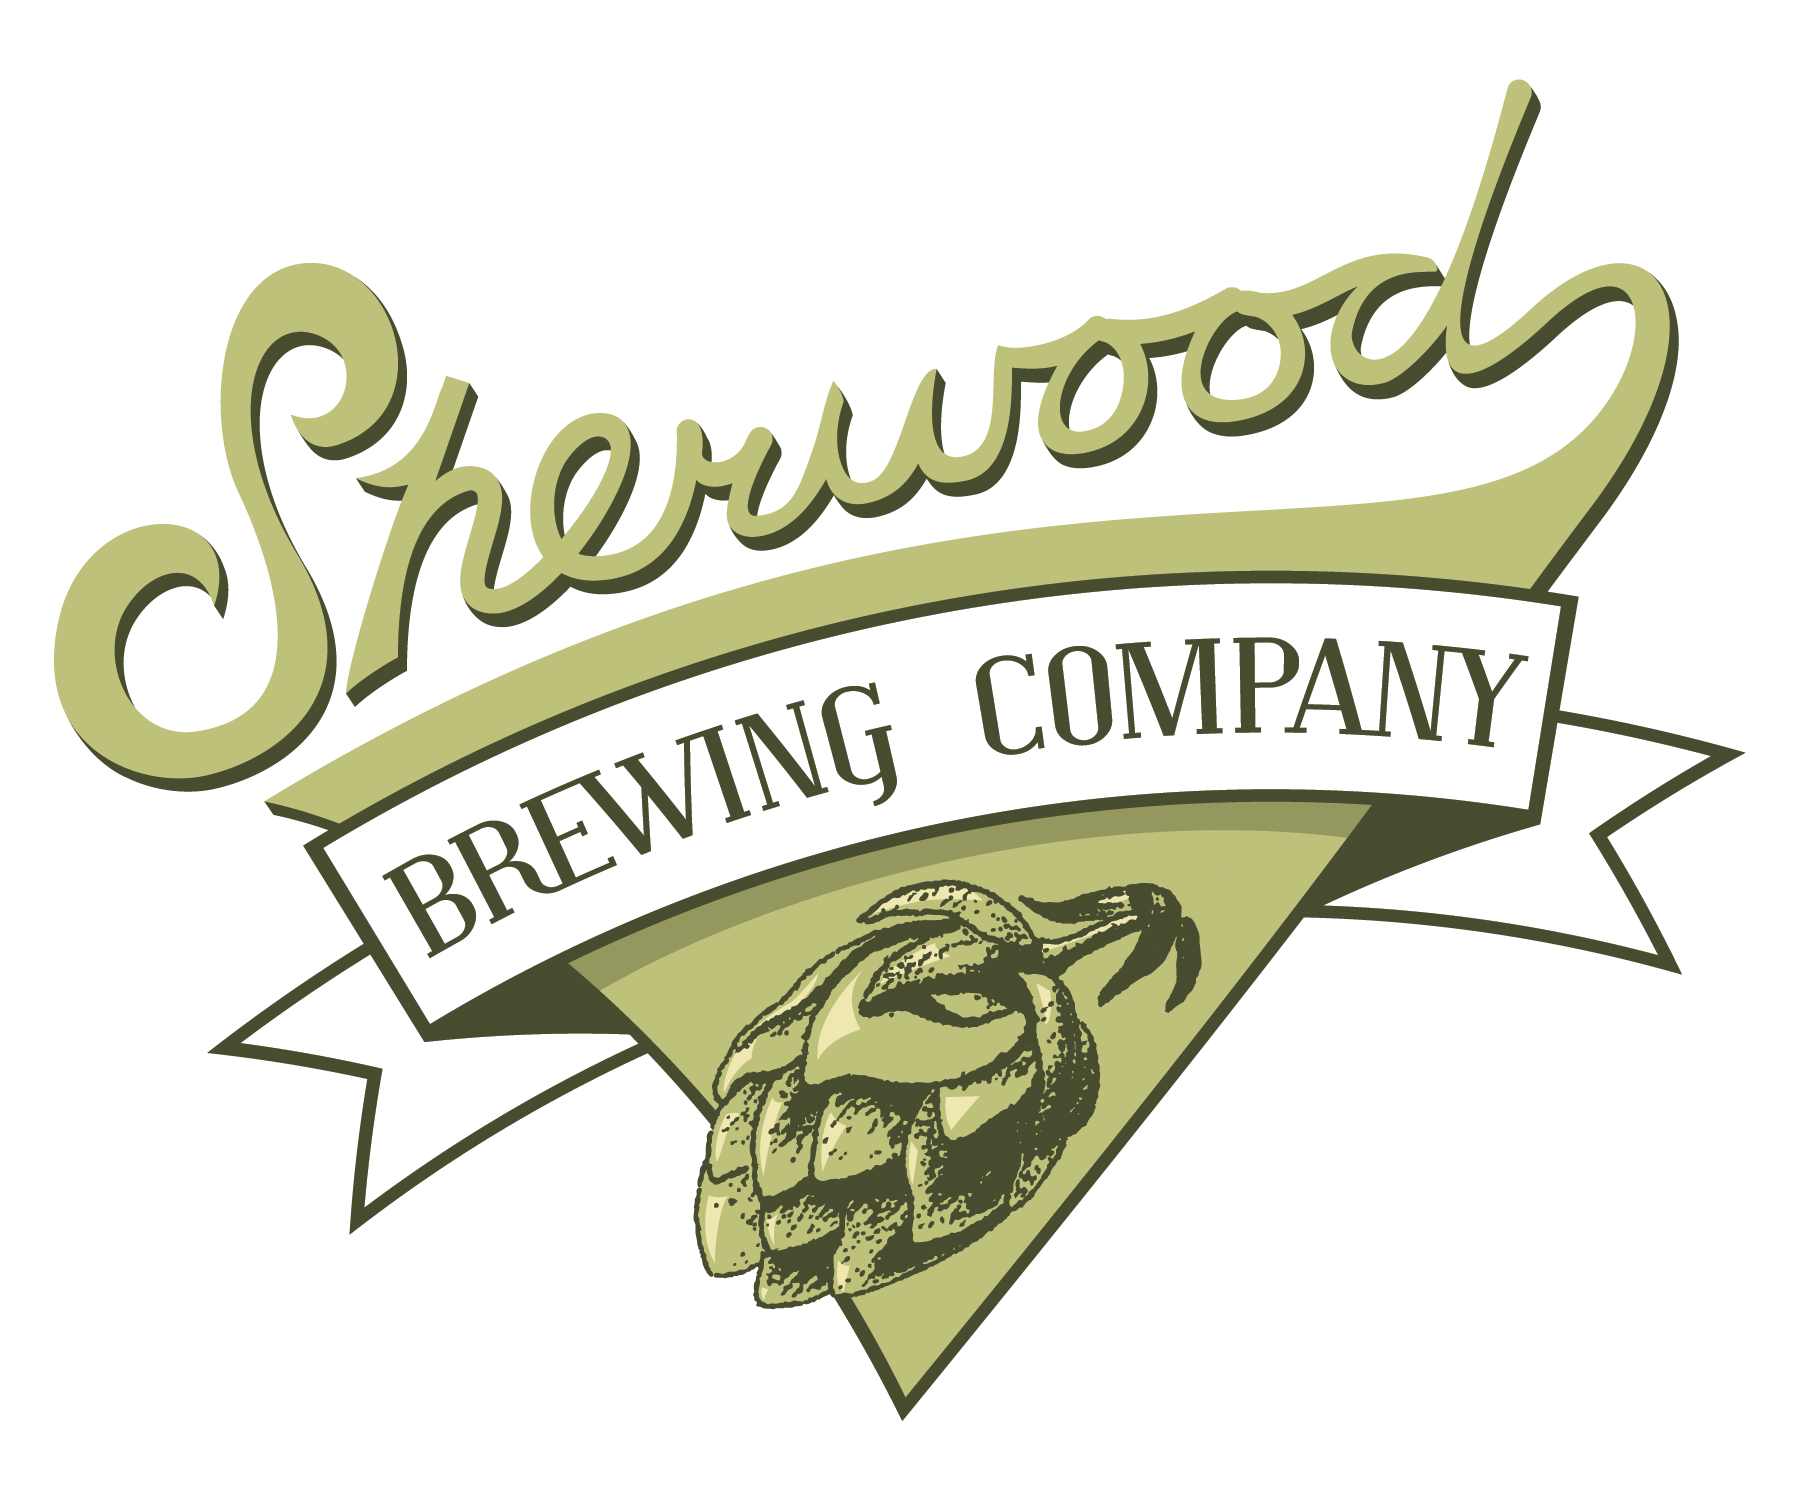 Sherwood Brewing